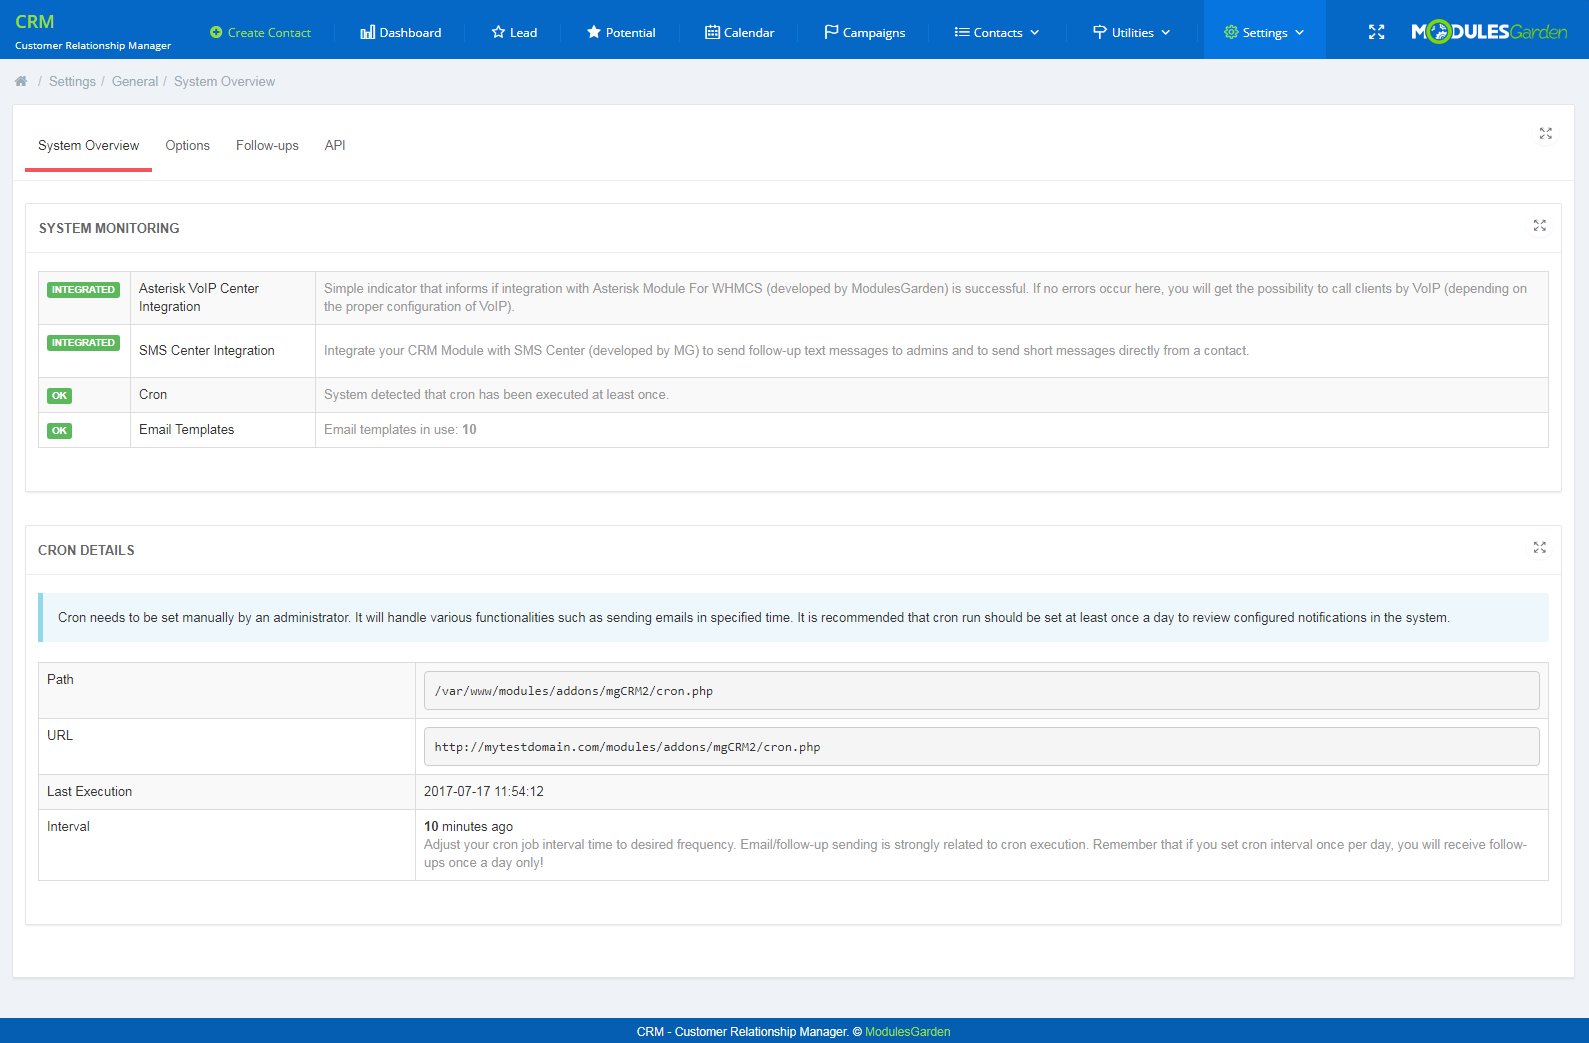 CRM For WHMCS: Screen 13